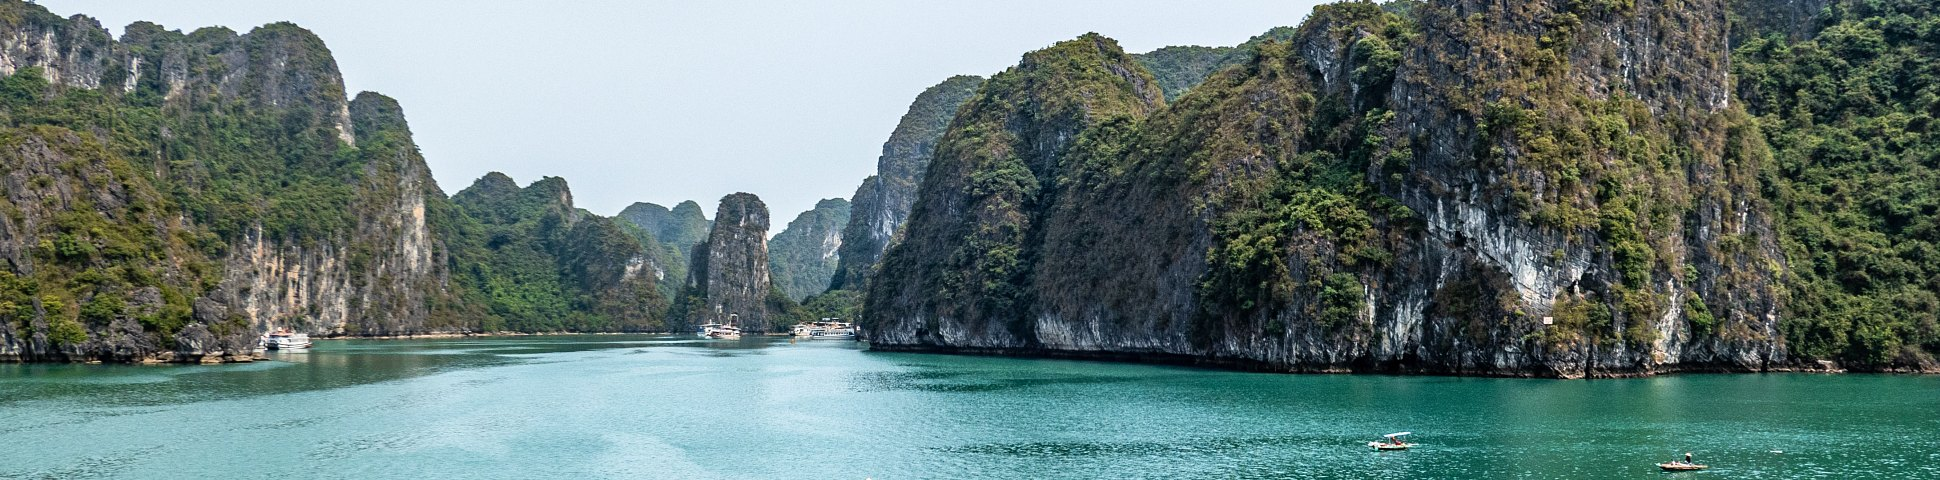 Wide-angle shot of Ha Long Bay in Vietnam, with blue ocean and tree-covered hills